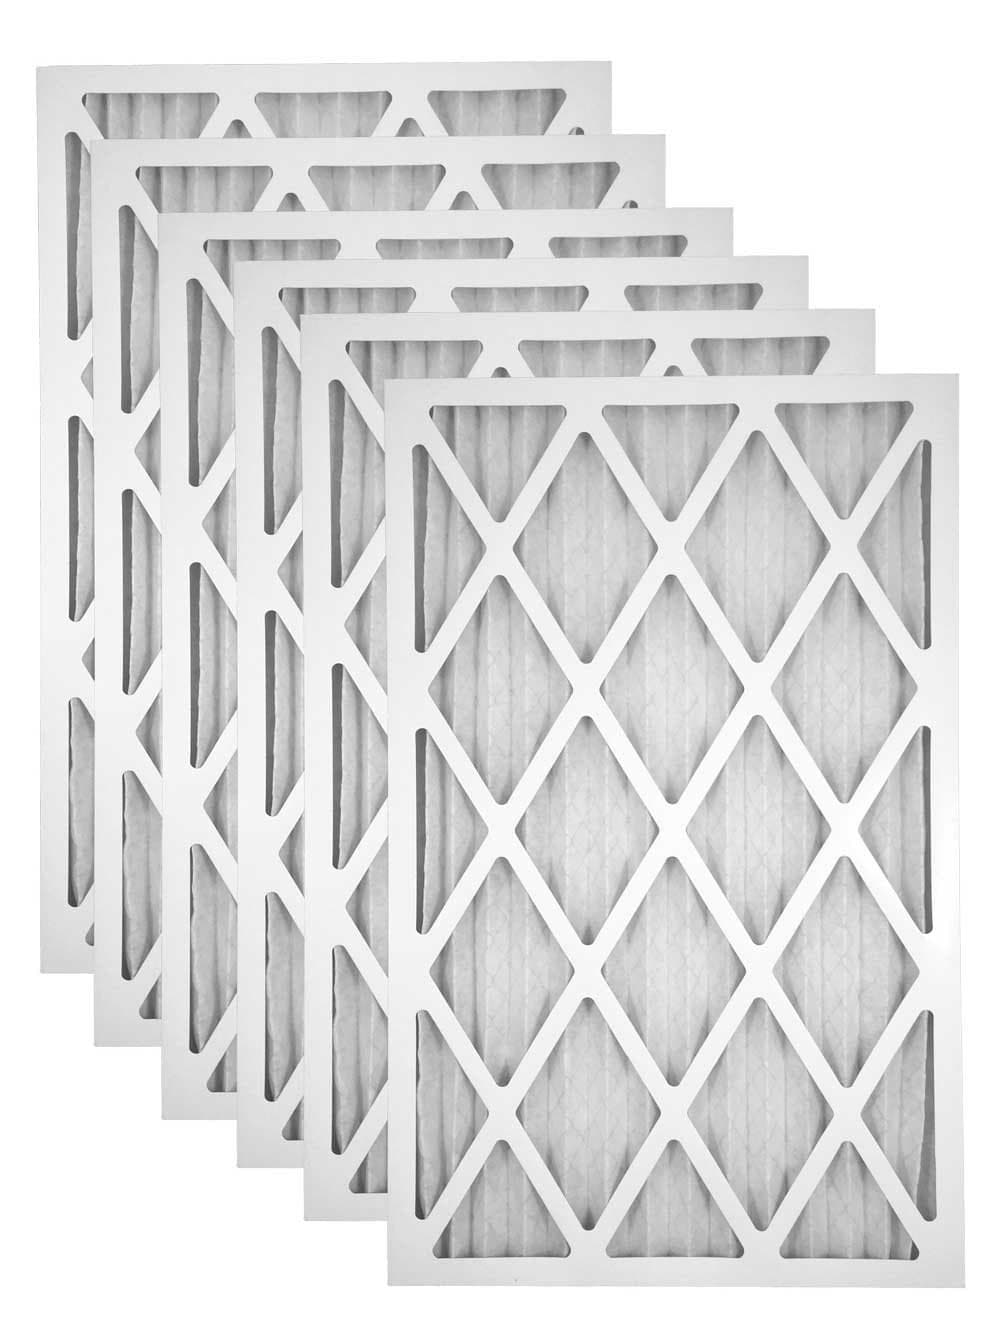 12x16x1 Merv 8 AC Furnace Filter - Case of 6